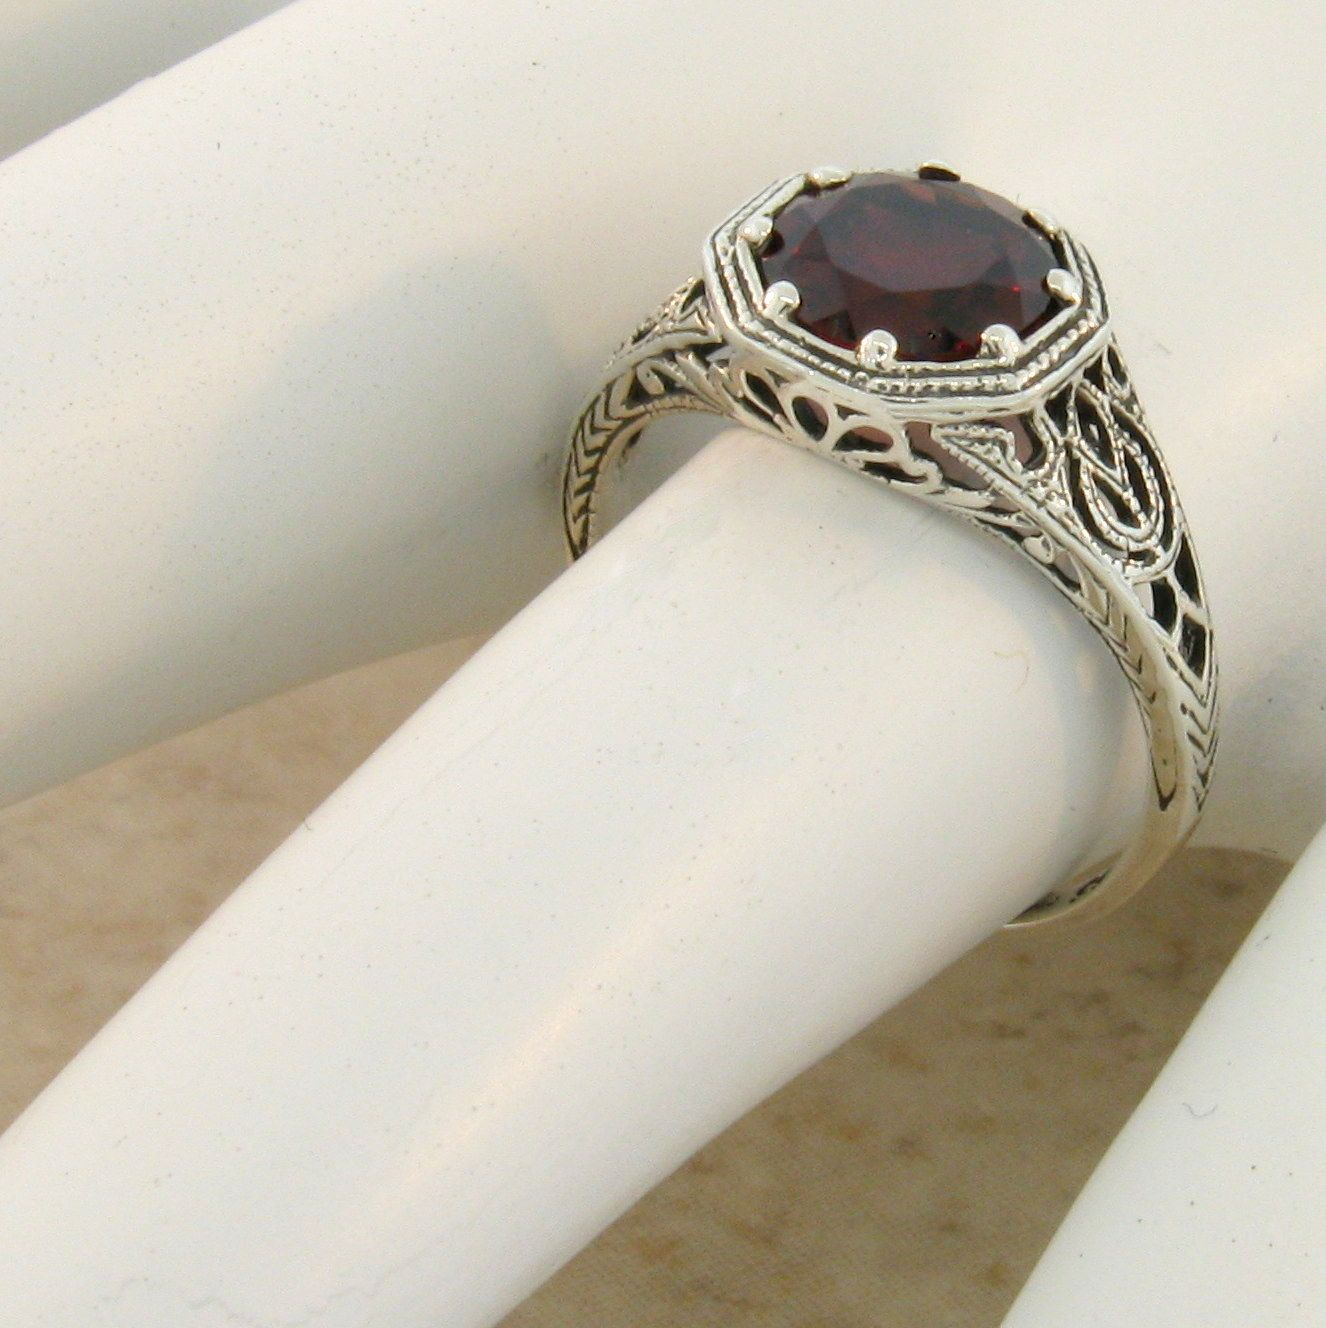 2 CT REAL GARNET ART DECO VINTAGE STYLE .925 STERLING SILVER RING SIZE 5 #869